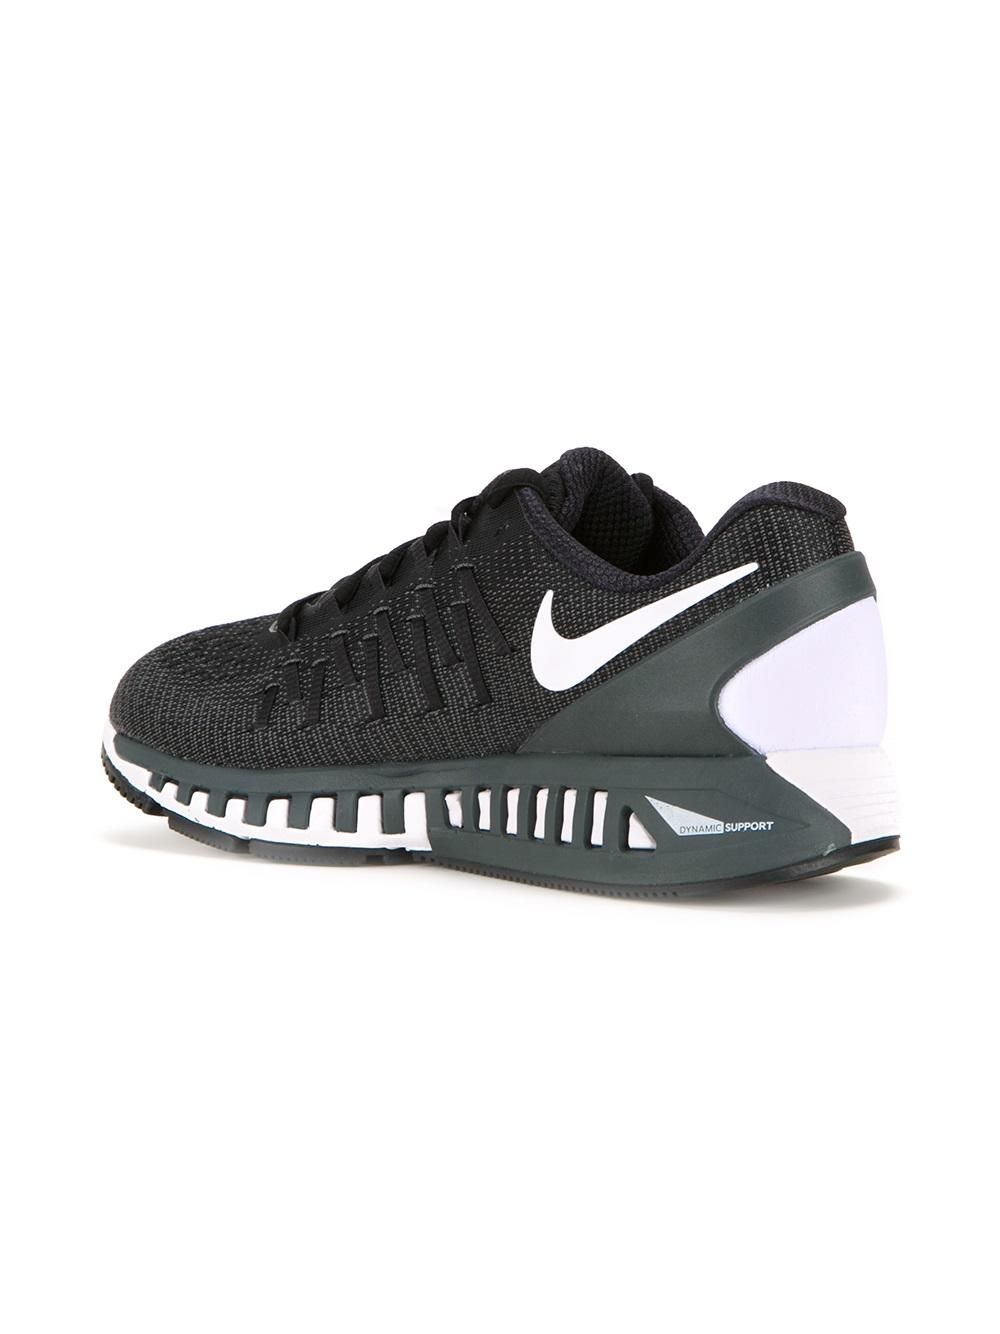 outlet store e6c95 7d129 tenis nike para mujer, tenis nike mujer blancos, tenis nike mujer negro,  zapatos